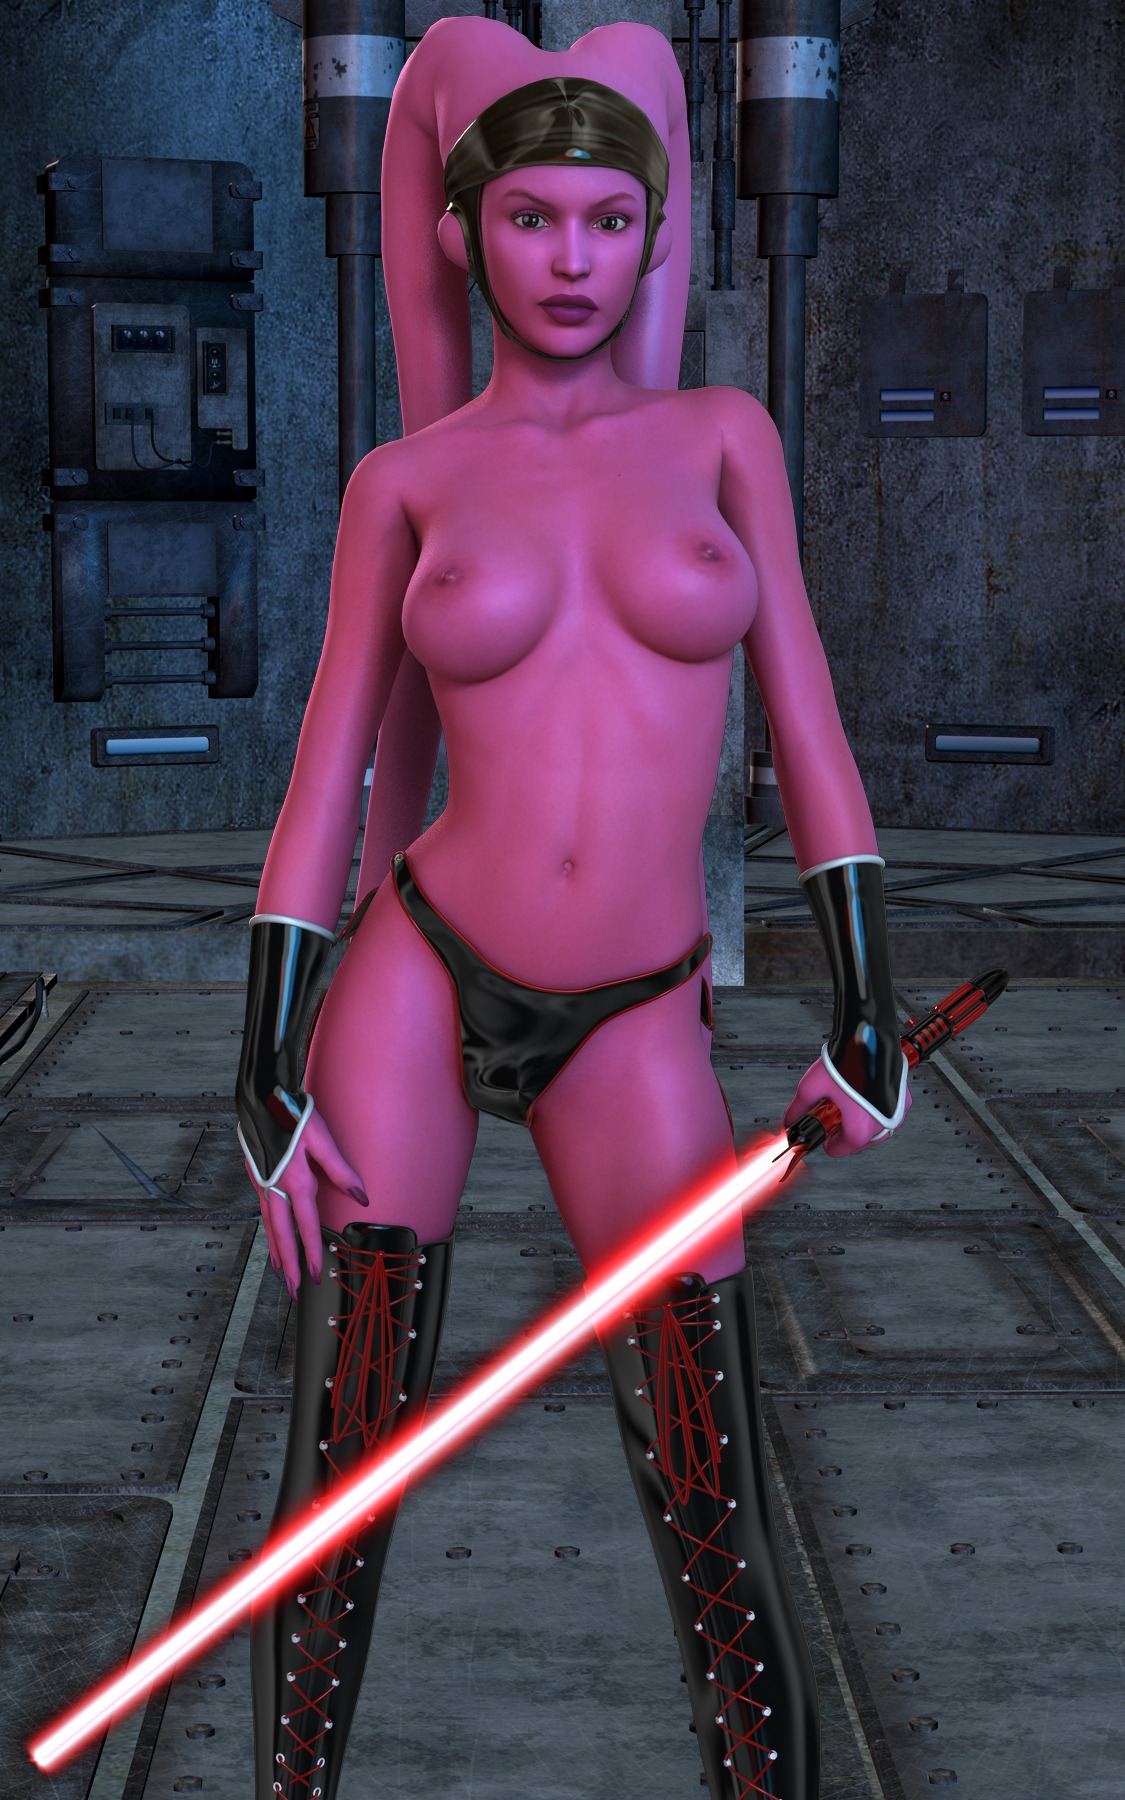 Naked twi'lek dancers sexual images